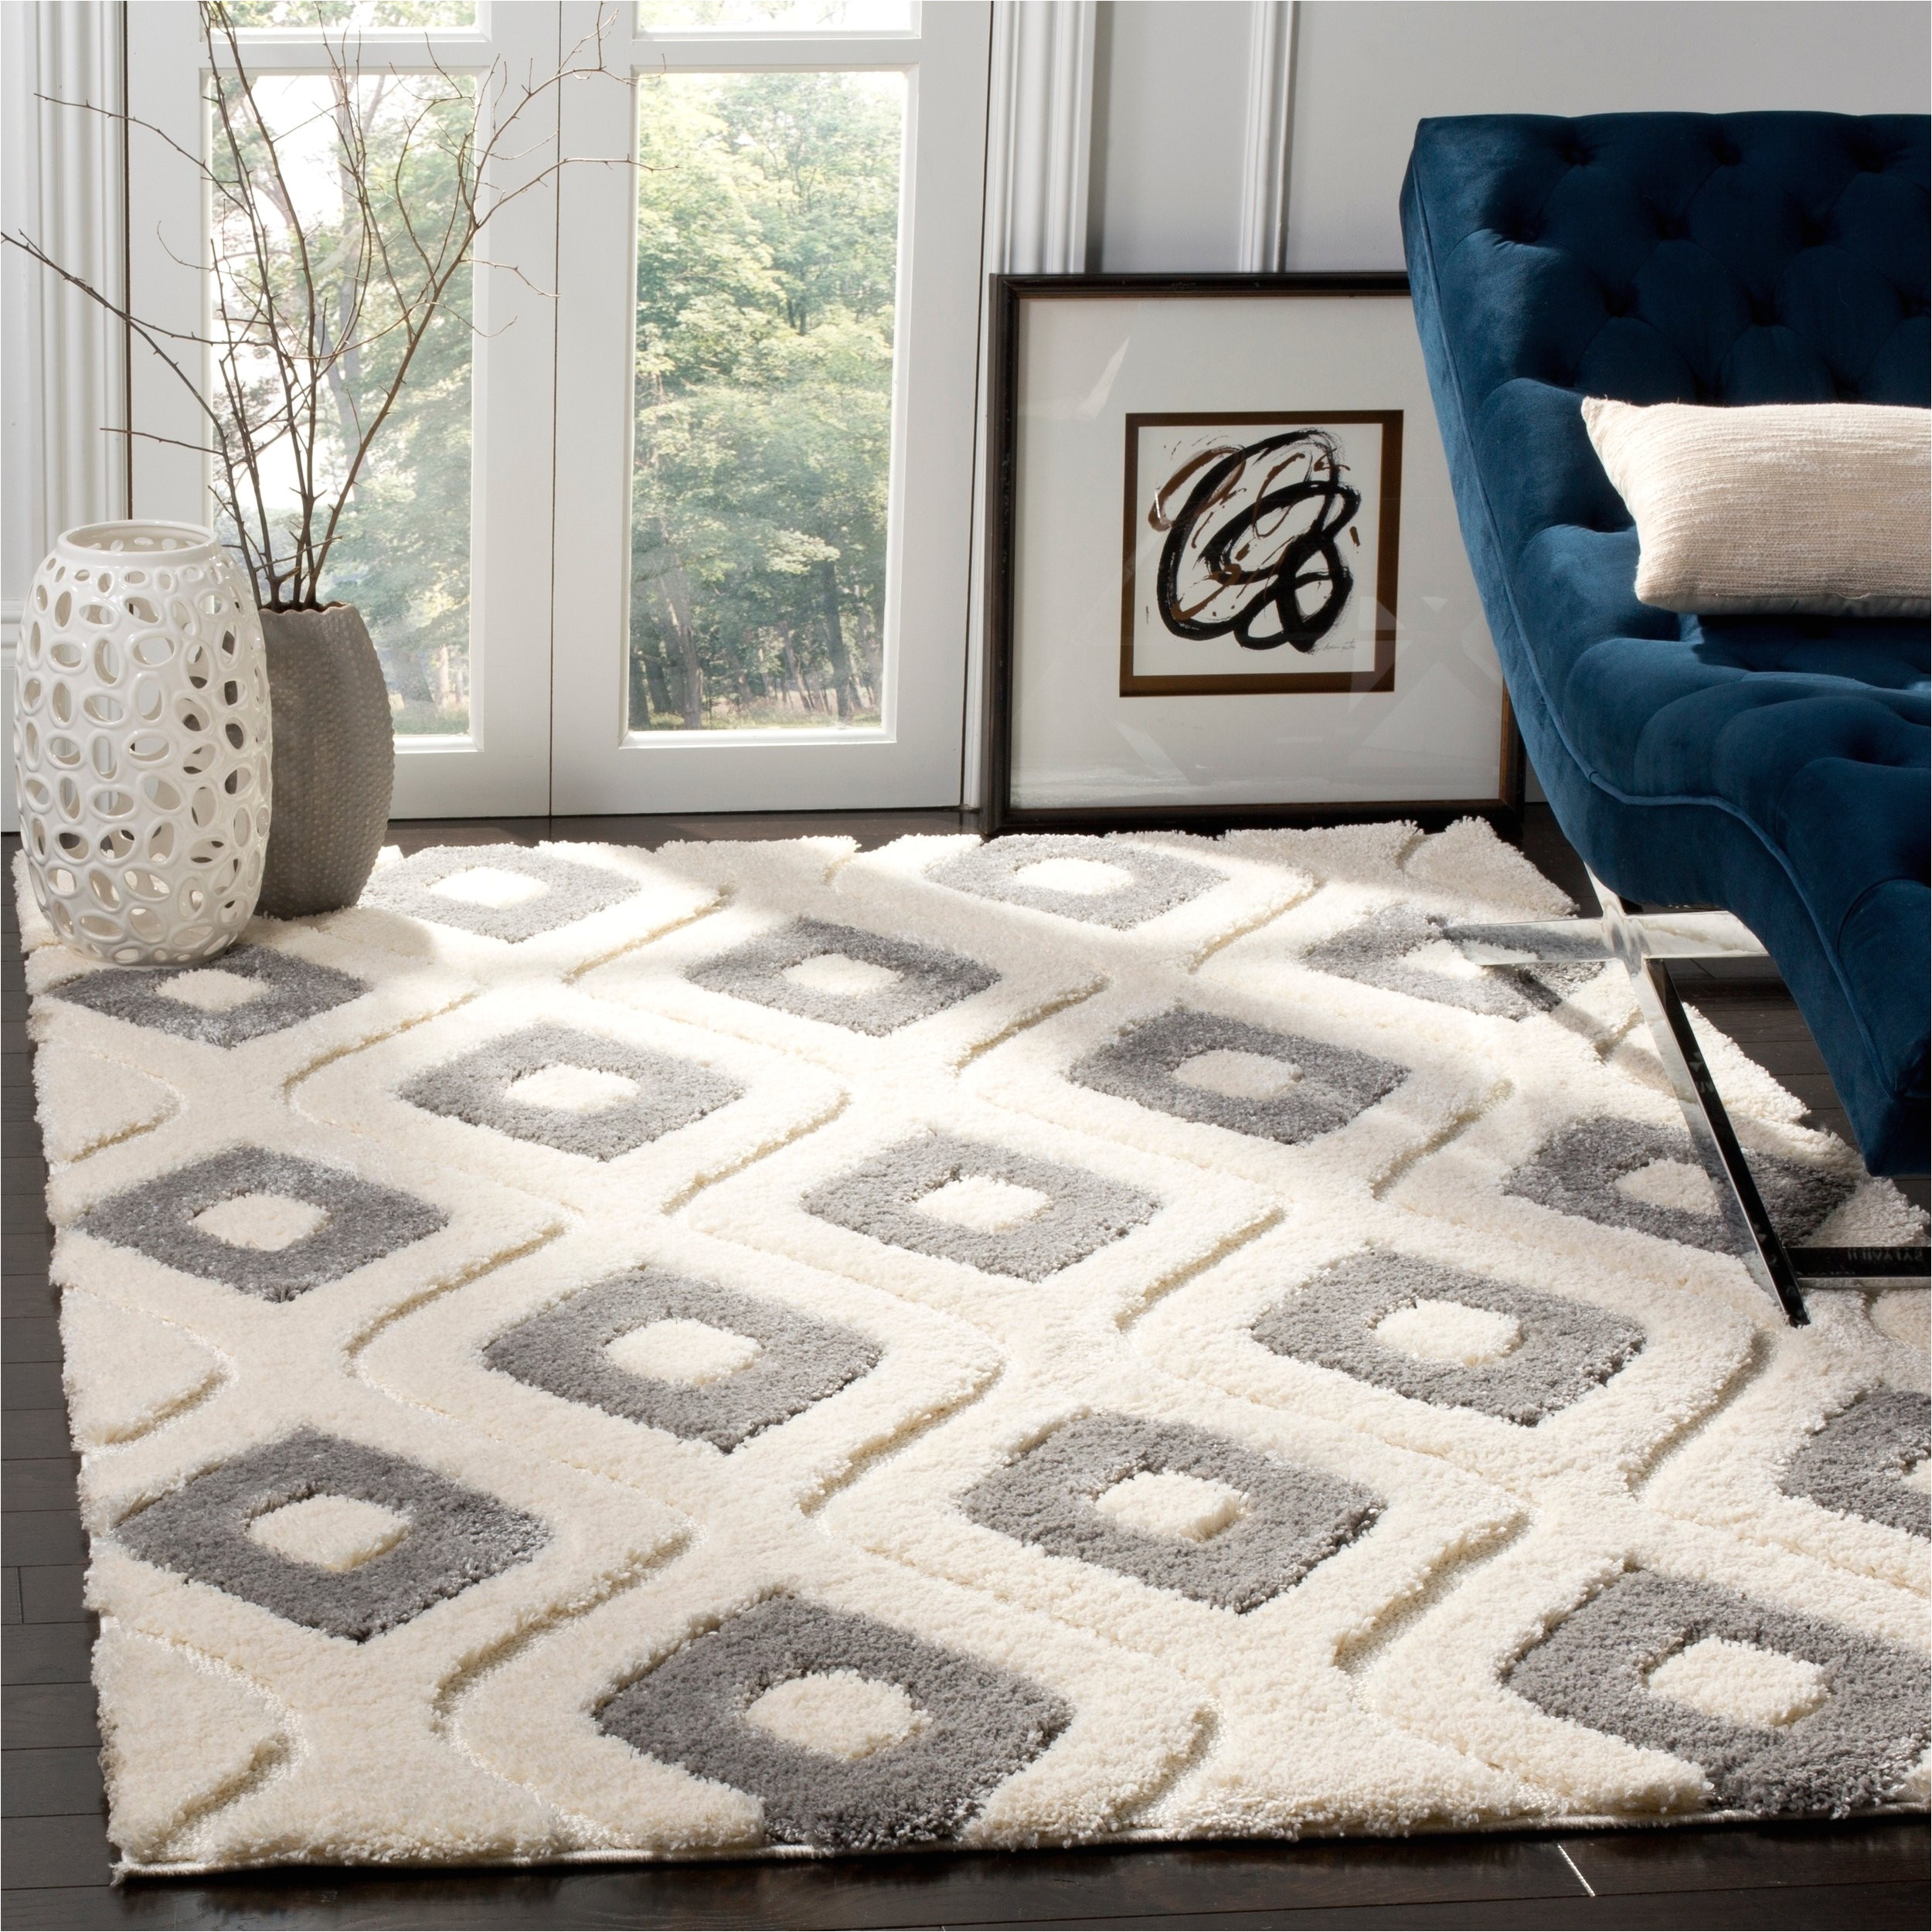 shop safavieh olympia shag cream grey polyester rug 8 x 10 on sale free shipping today overstock com 18732616